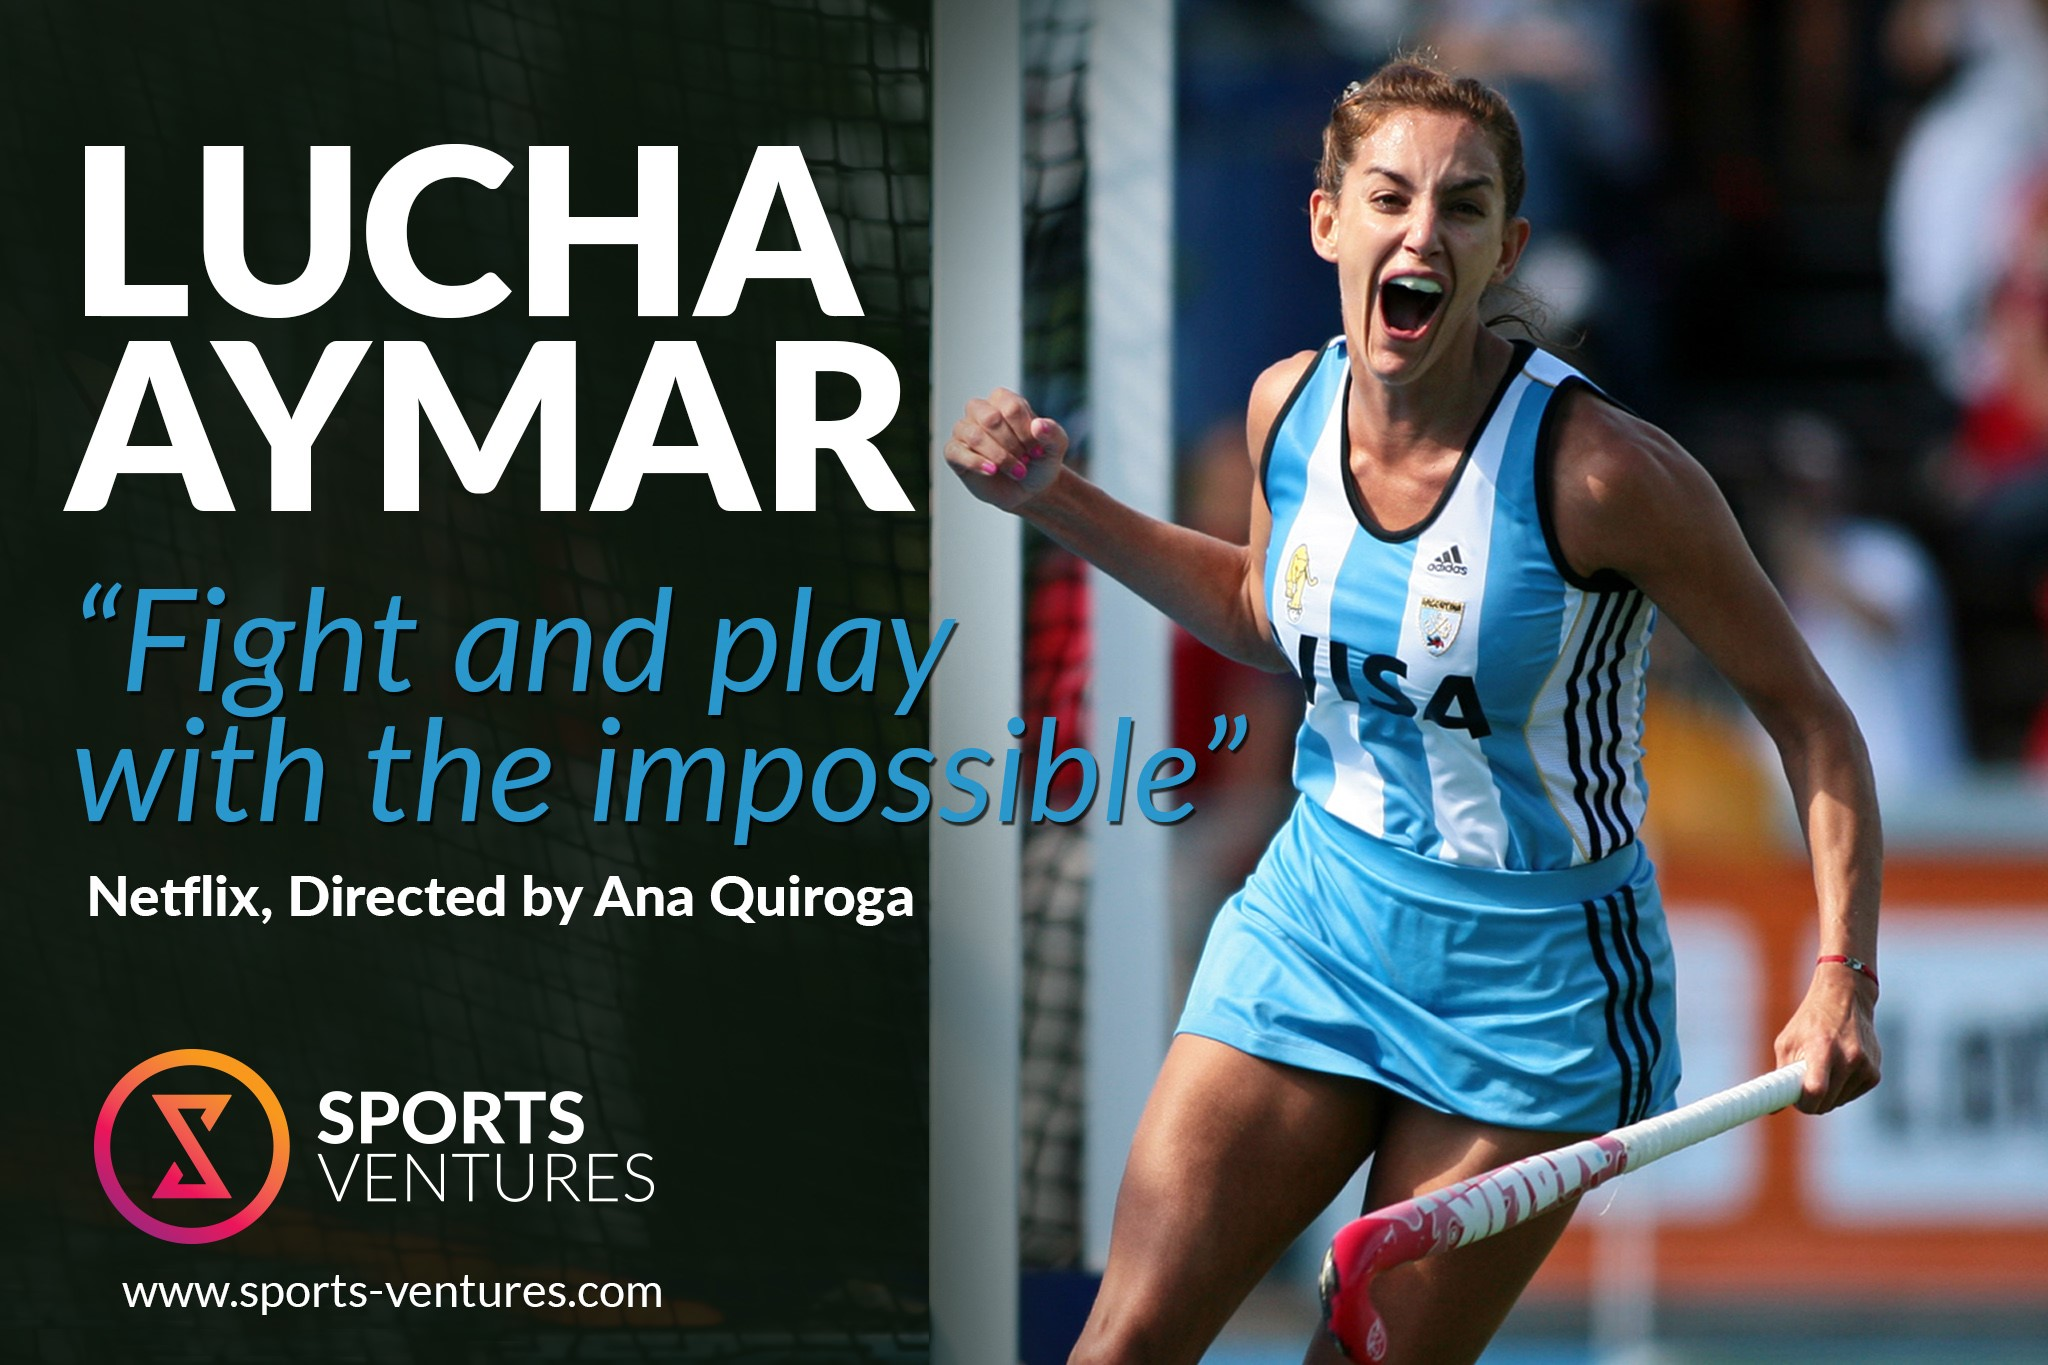 Lucha Aymar Field Hockey Tours Sports Ventures